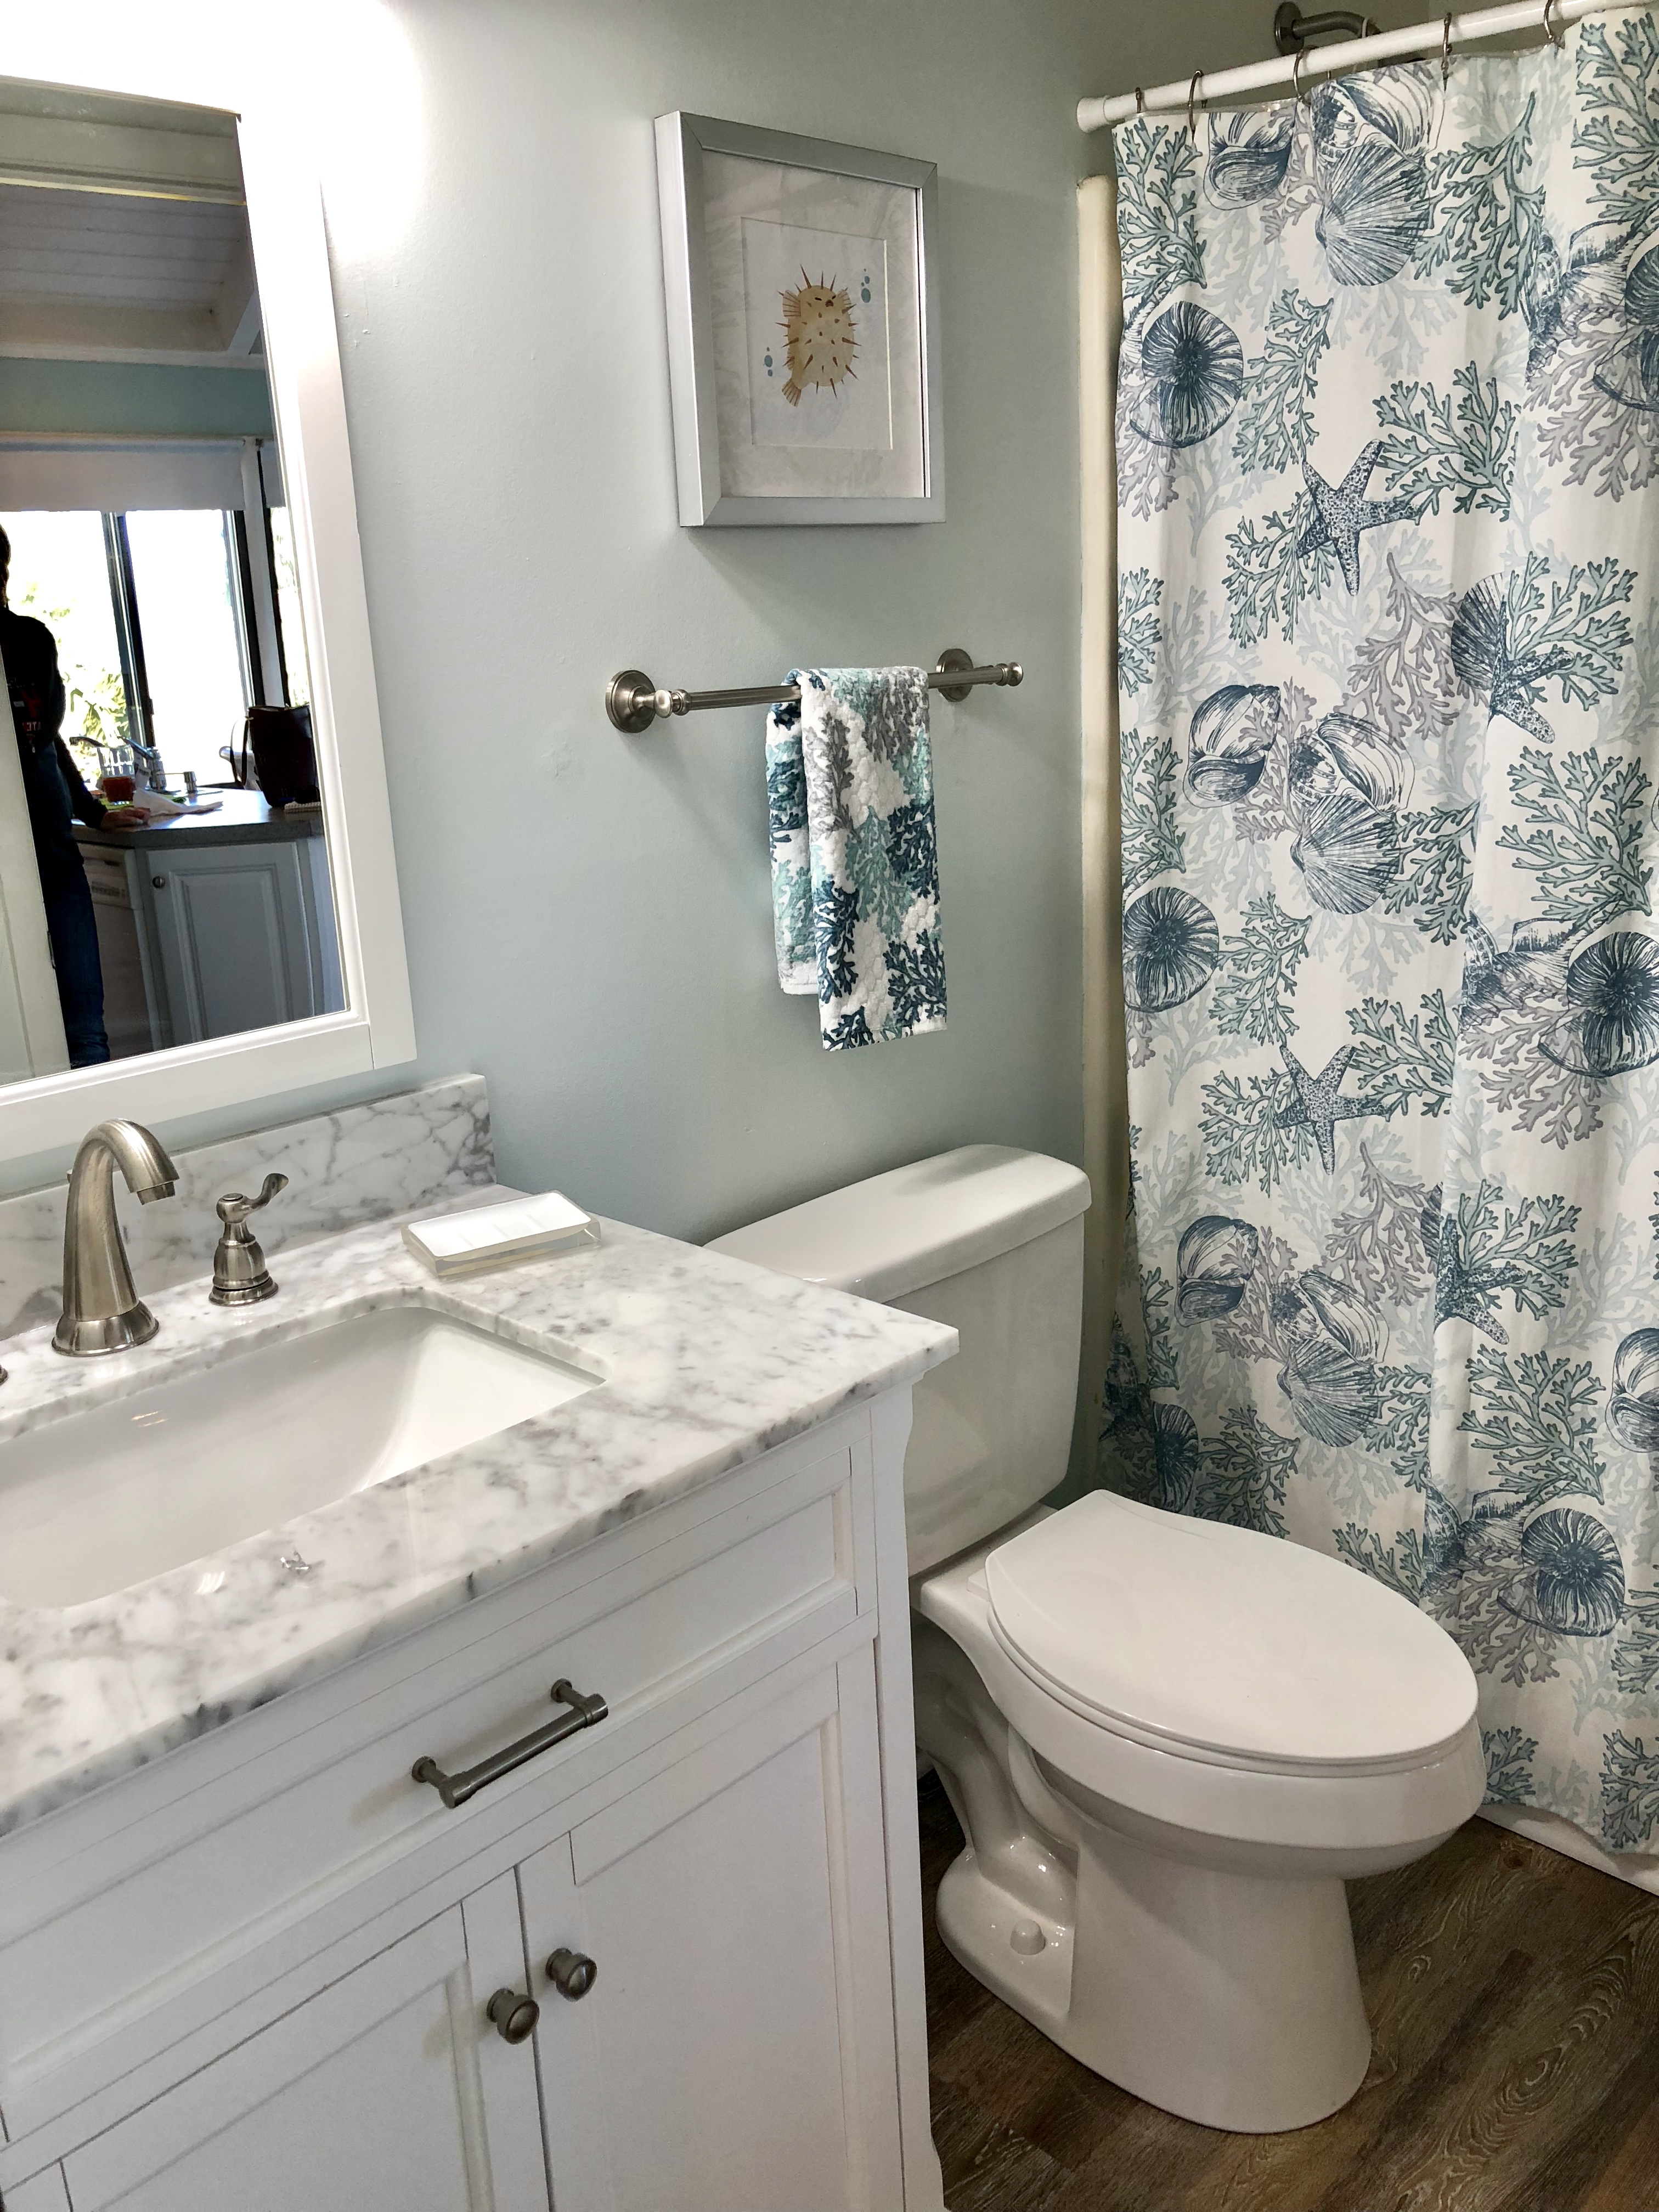 The hall bathroom has a marble top vanity and a tub/shower combination.